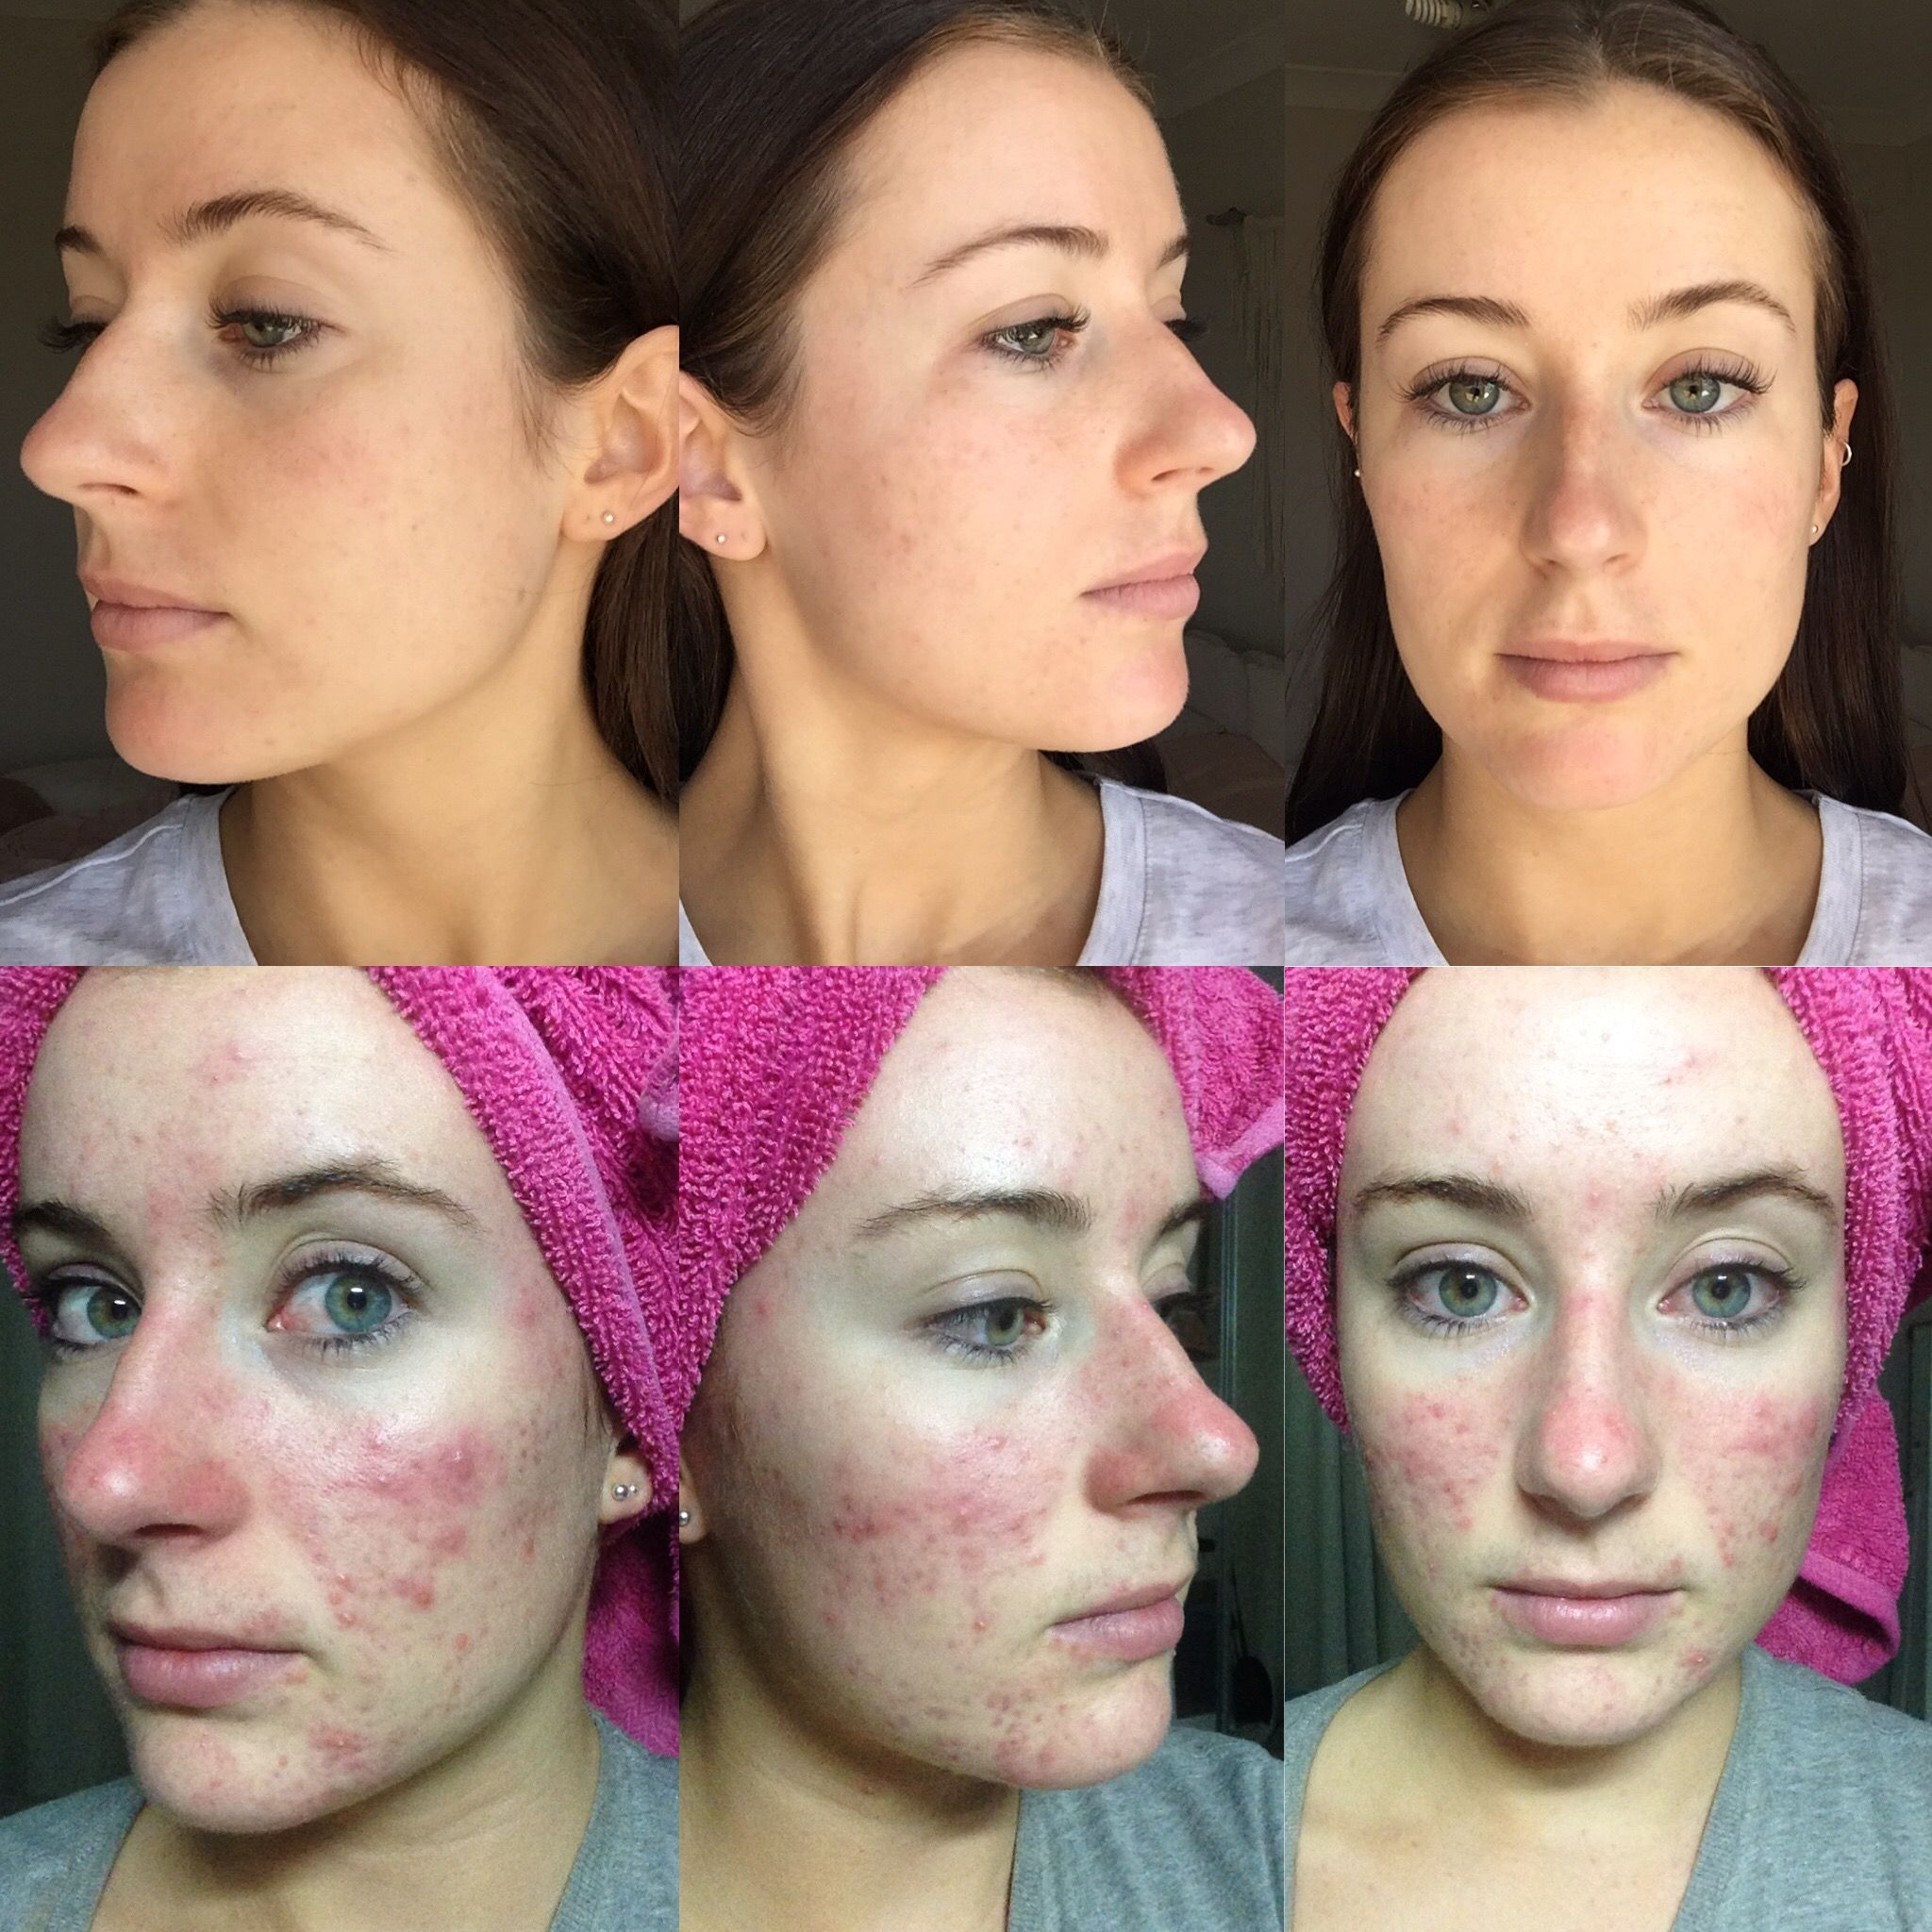 Spironolactone for adult acne